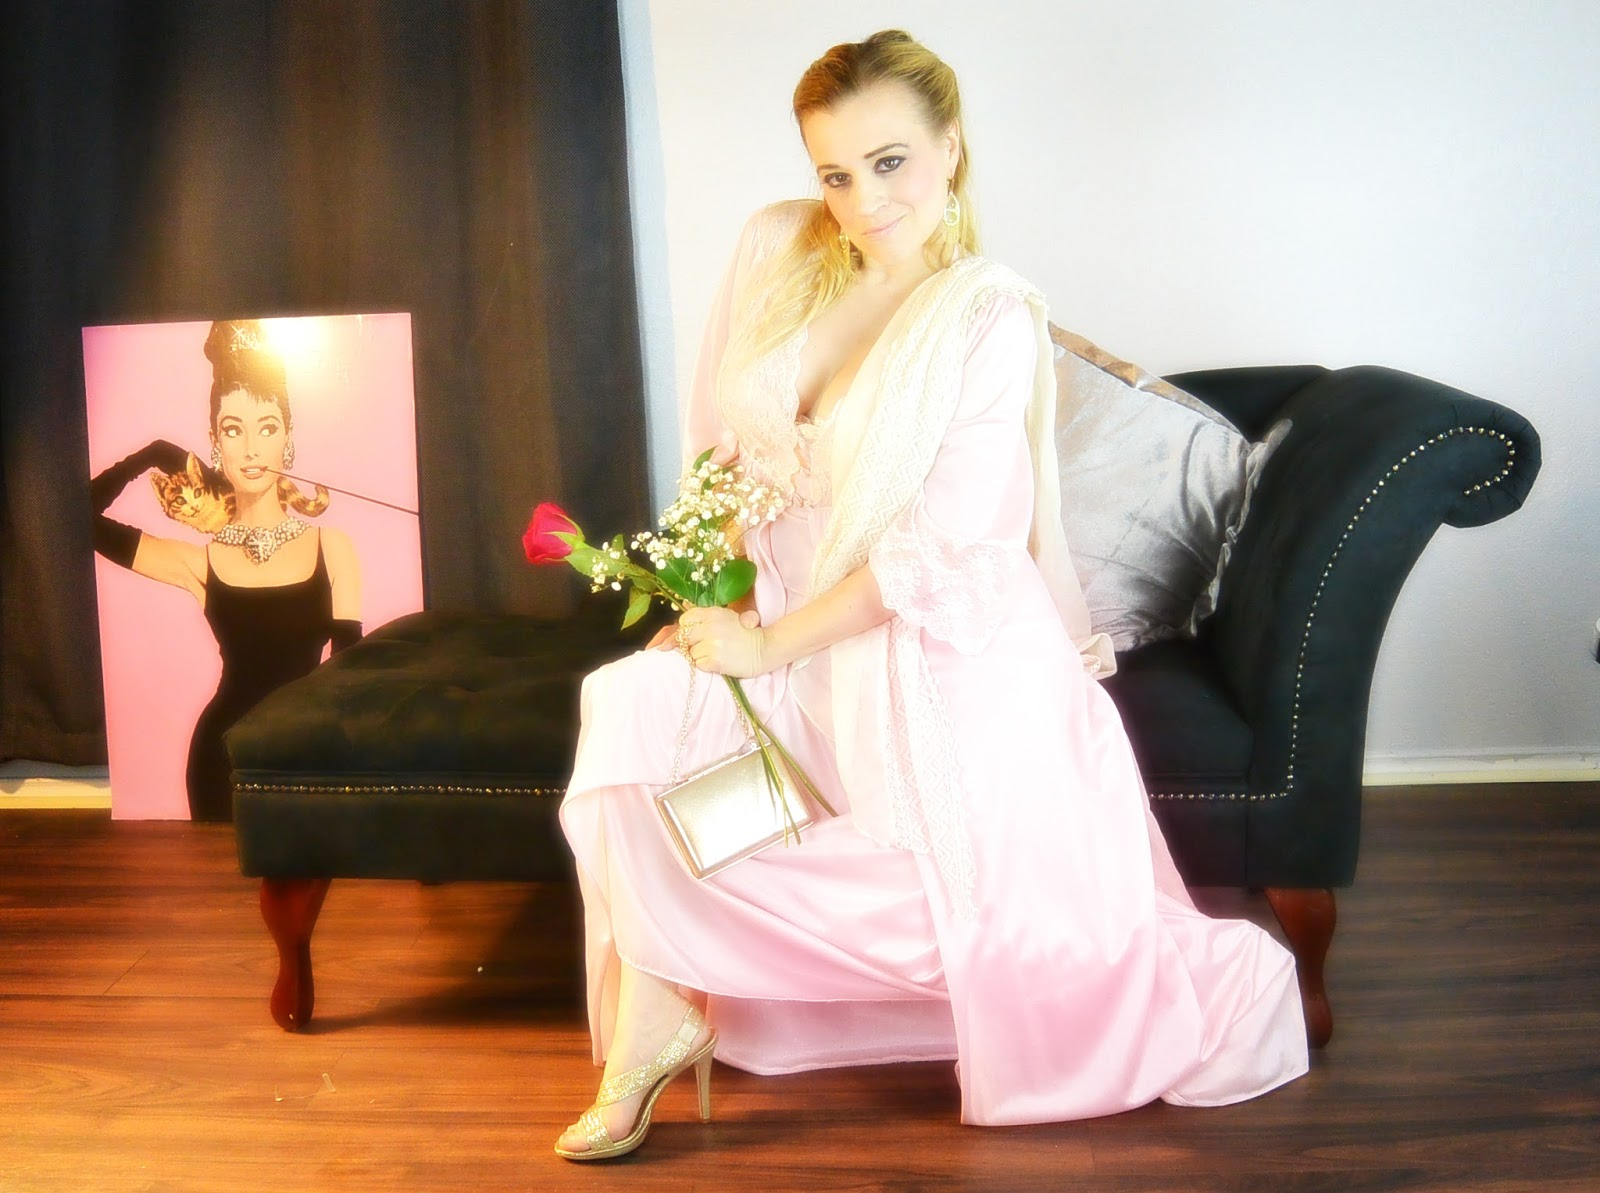 blonde modeling pink vintage silk nightgown on chaise